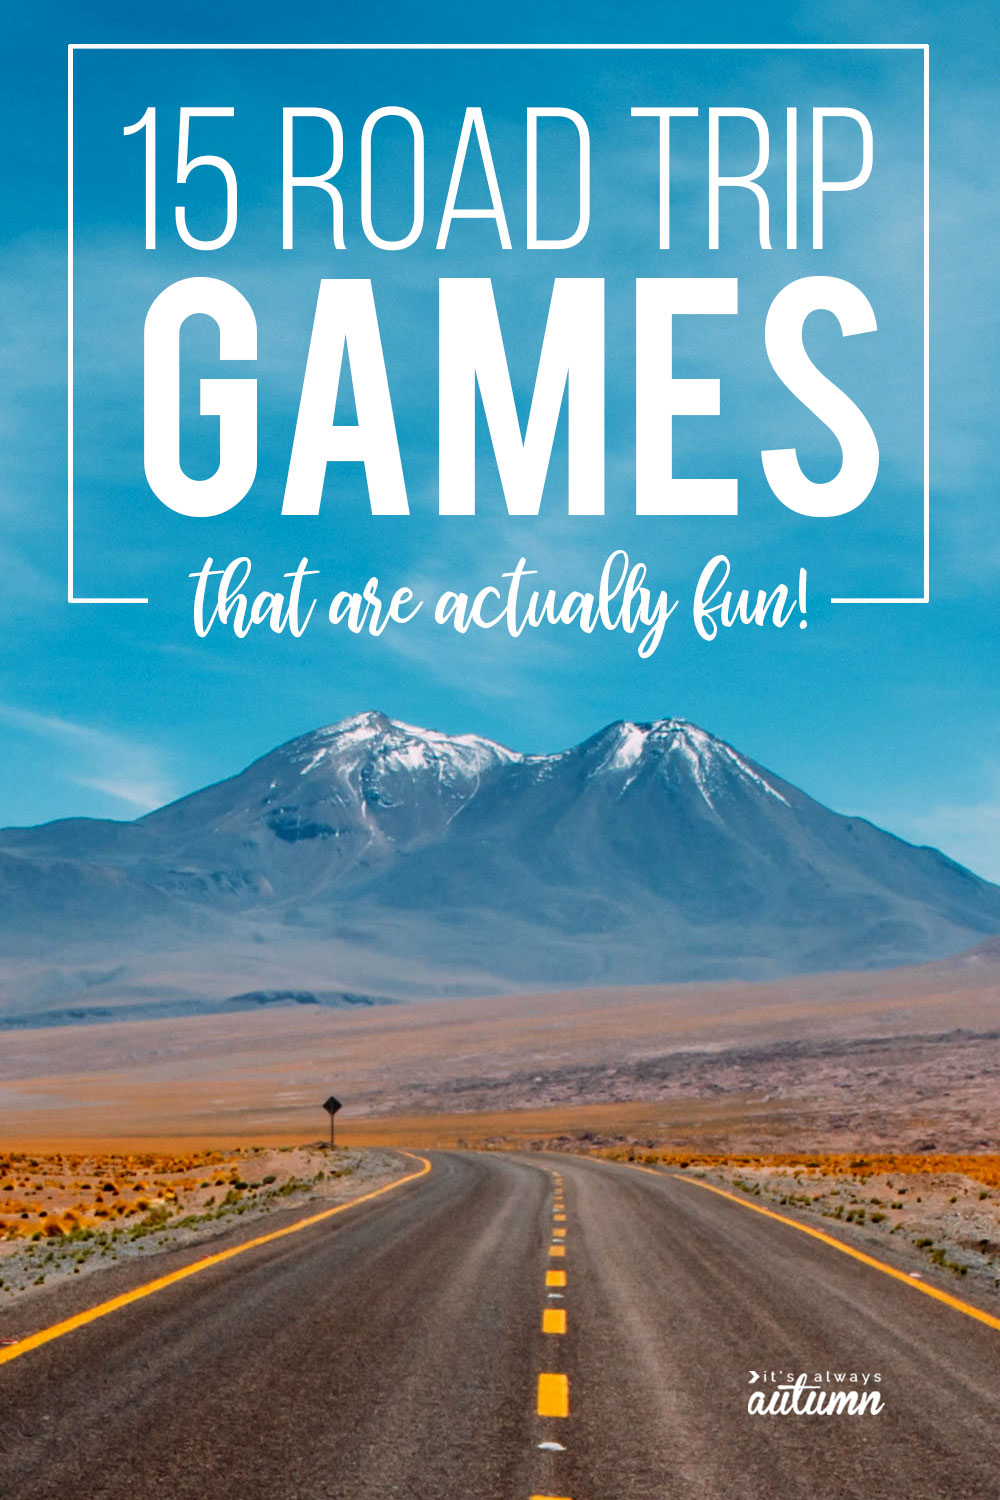 Easy road trip games that are actually fun! 15 games to play in the car.